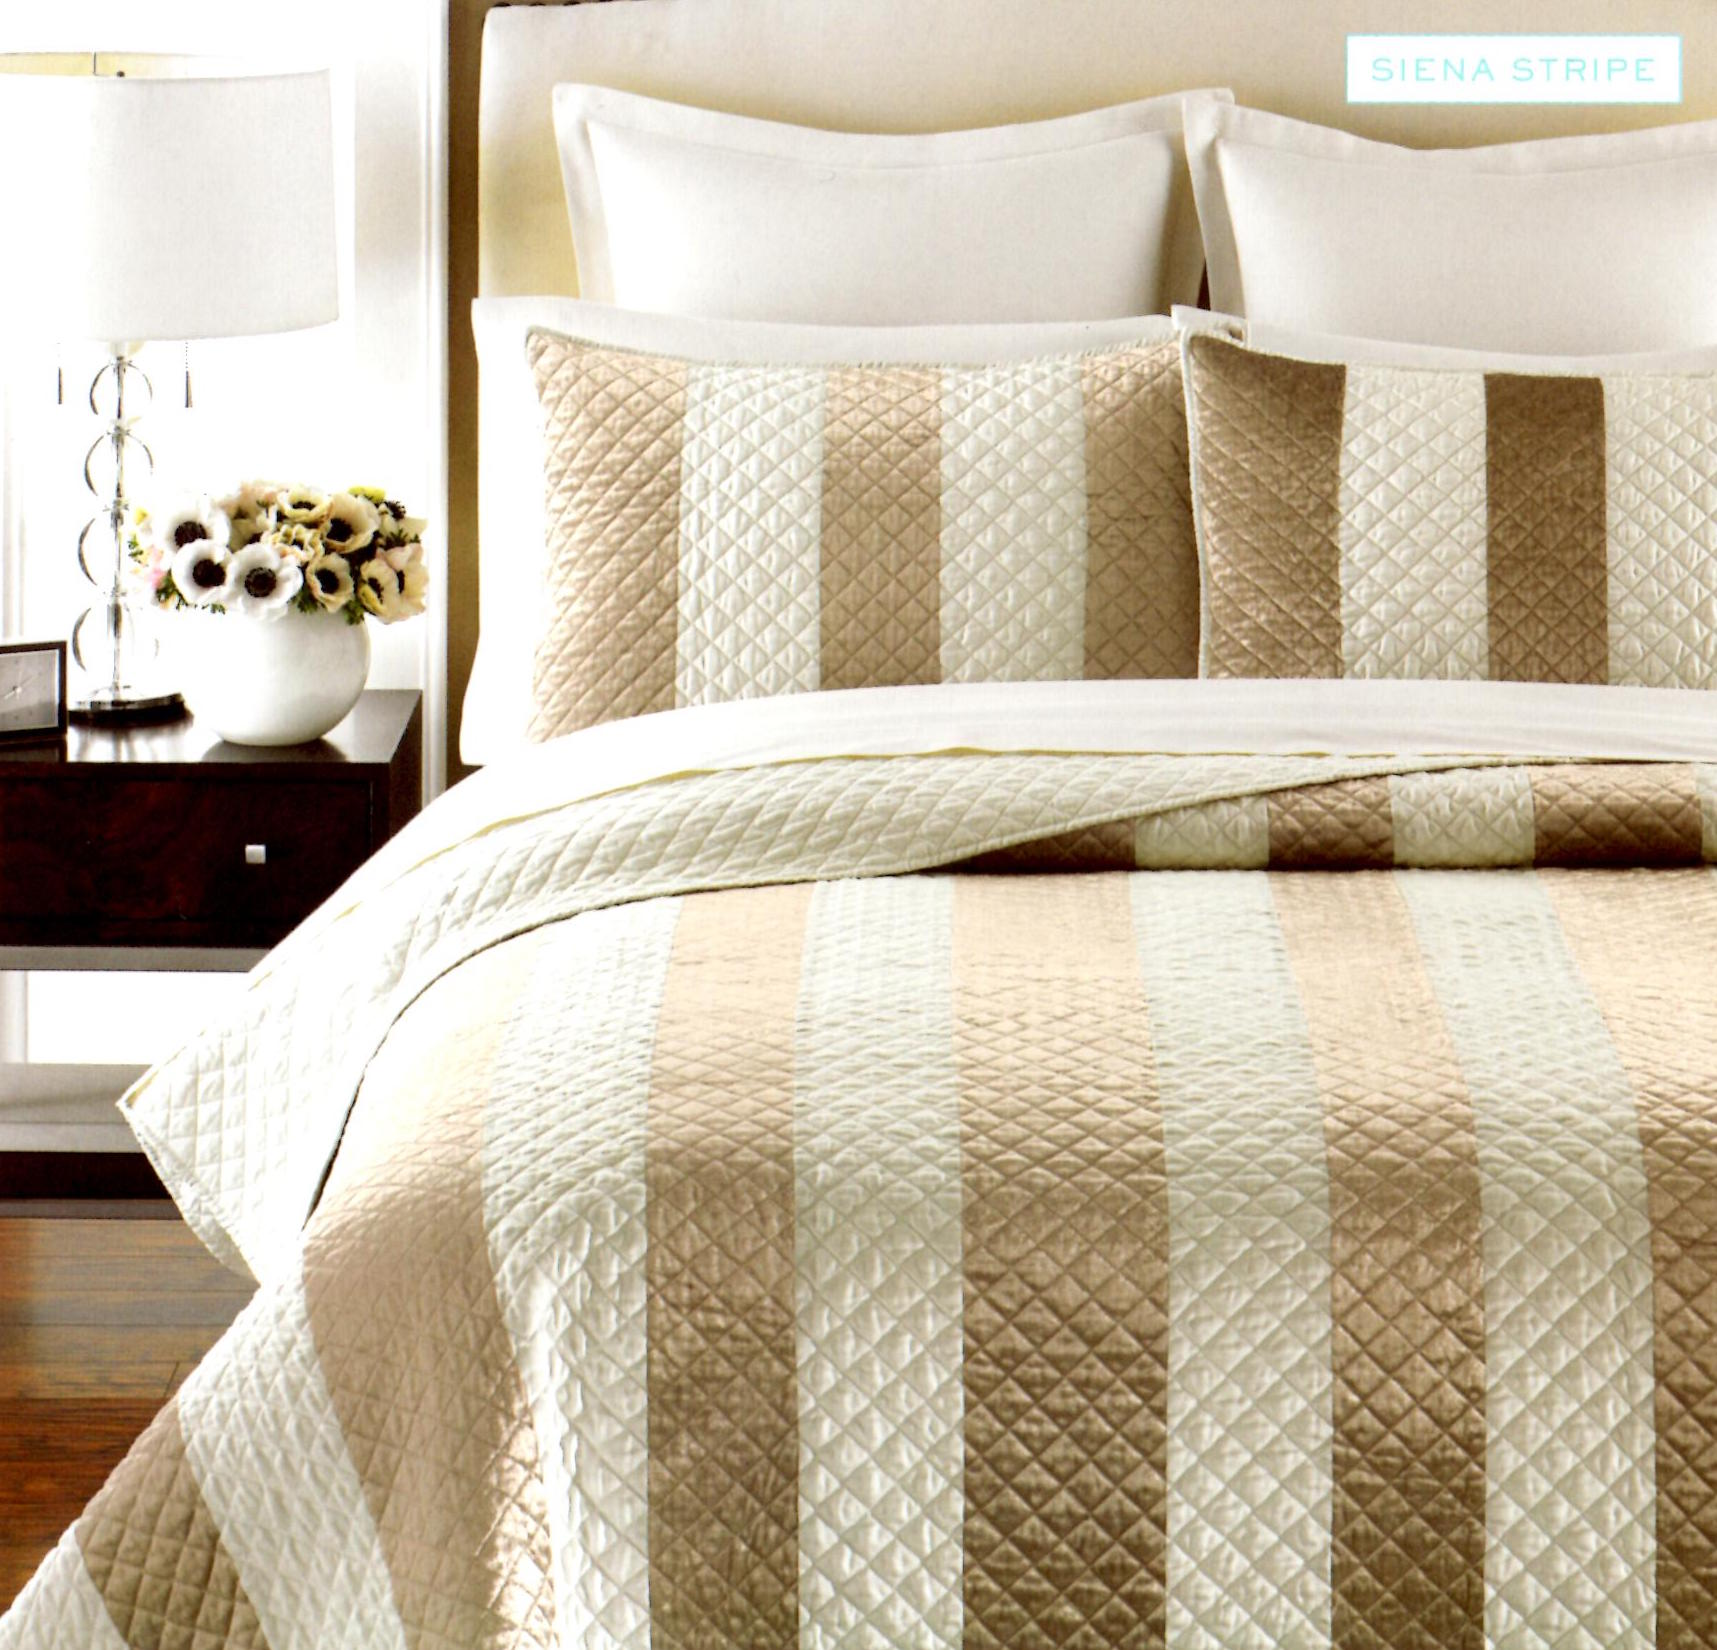 Martha Stewart Siena Stripe King Quilt SOC 1098